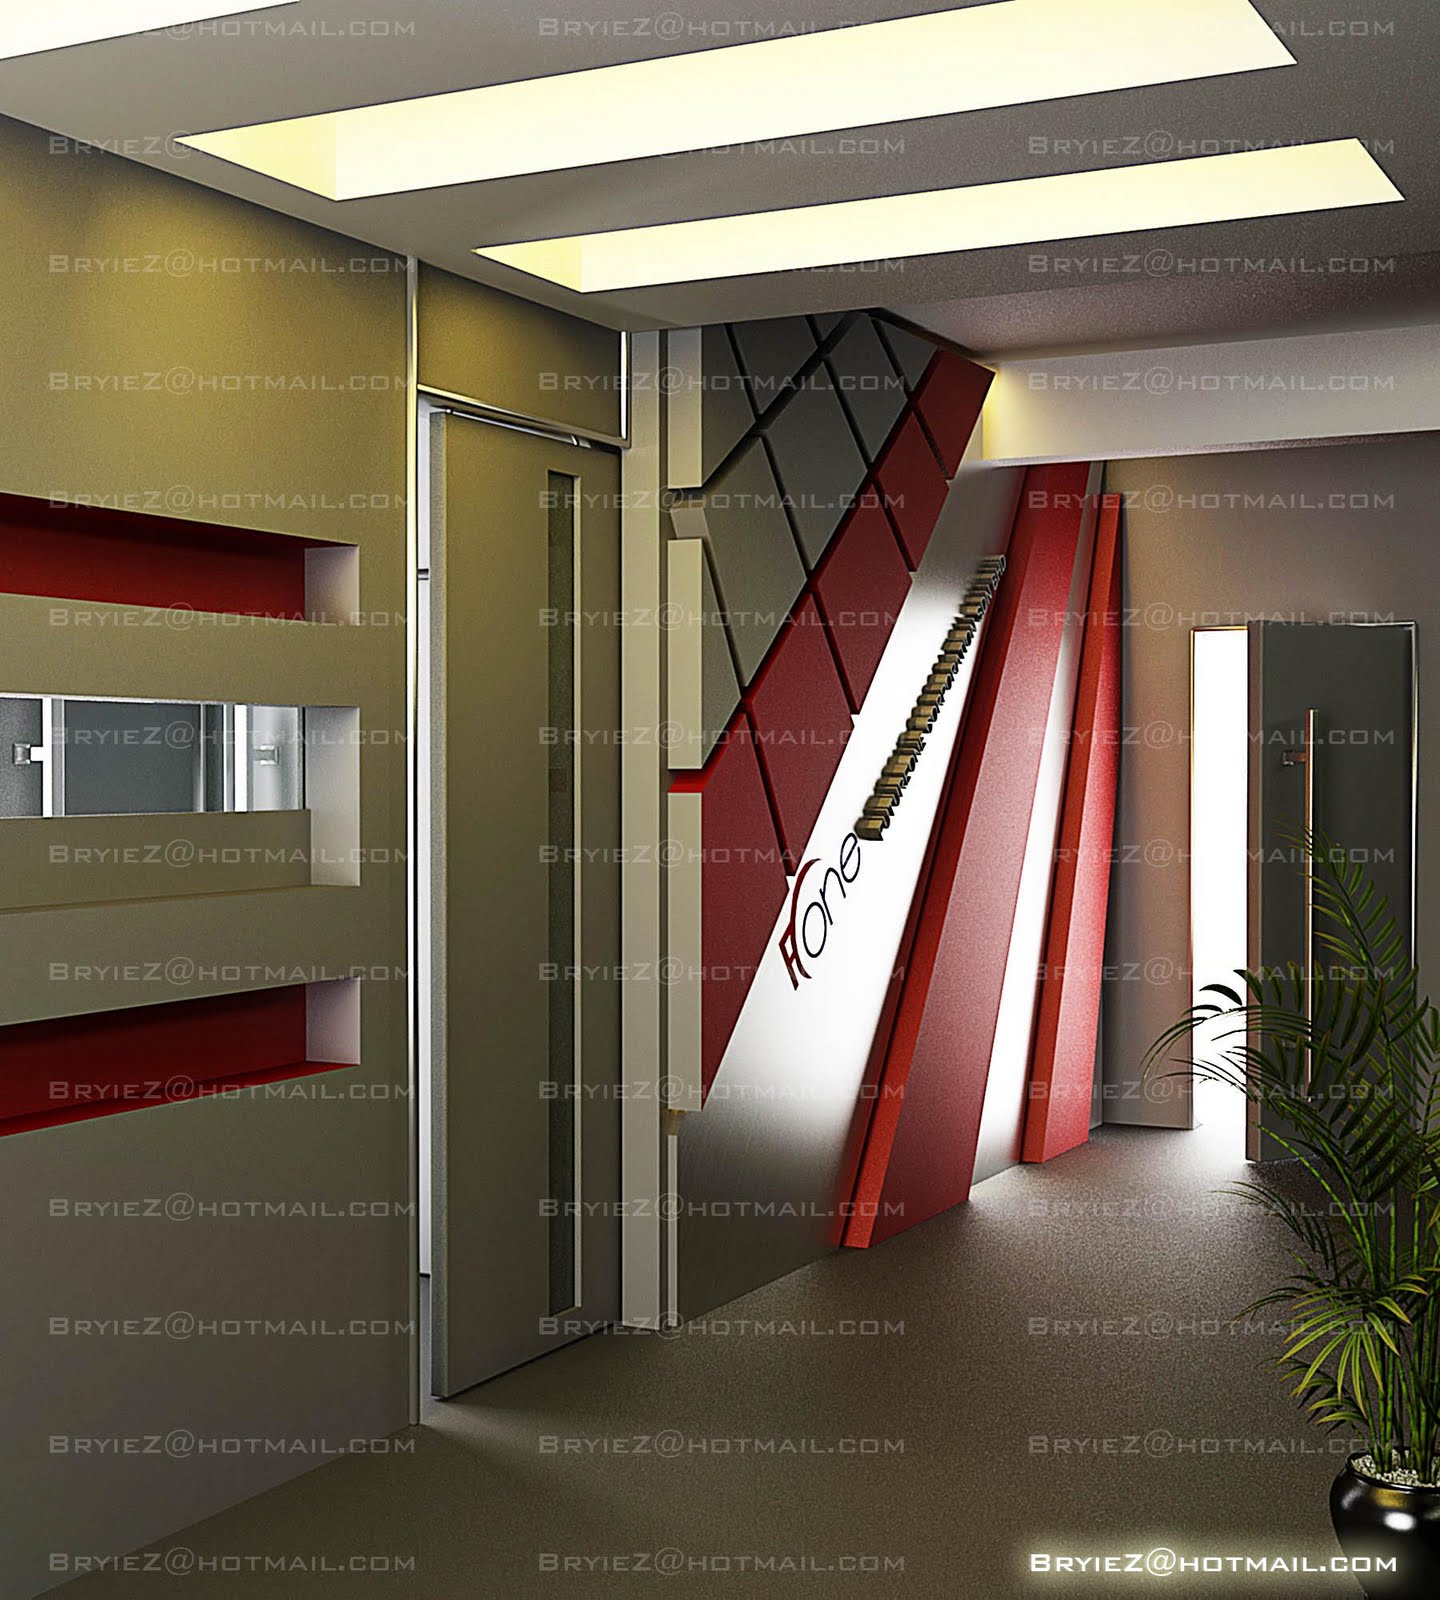 bryiez interior space design office entrance